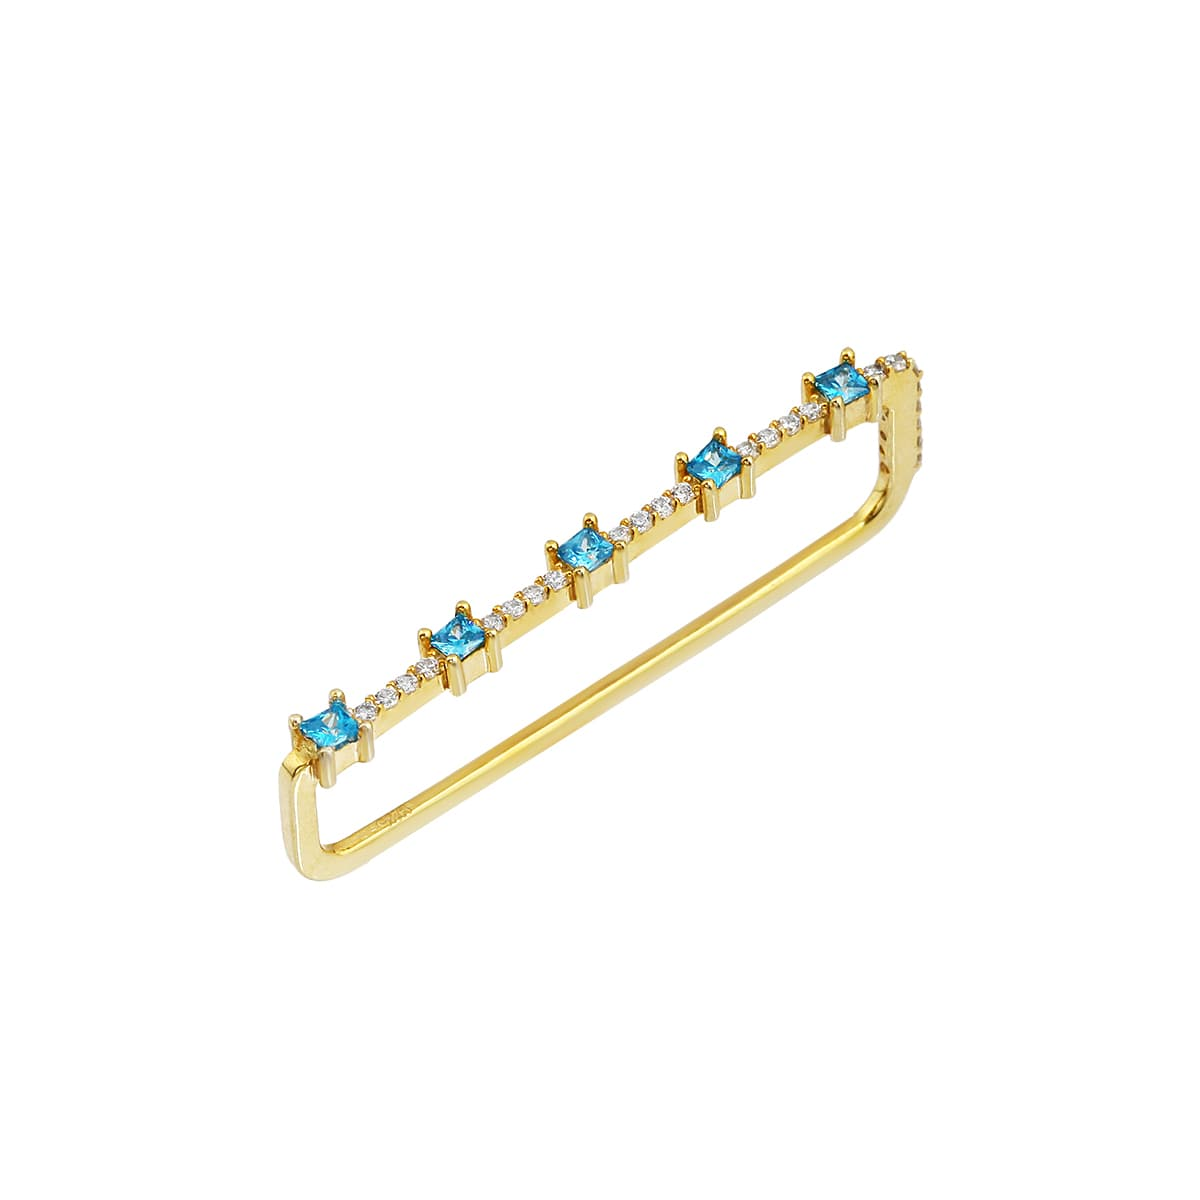 Gold plated silver earhat models